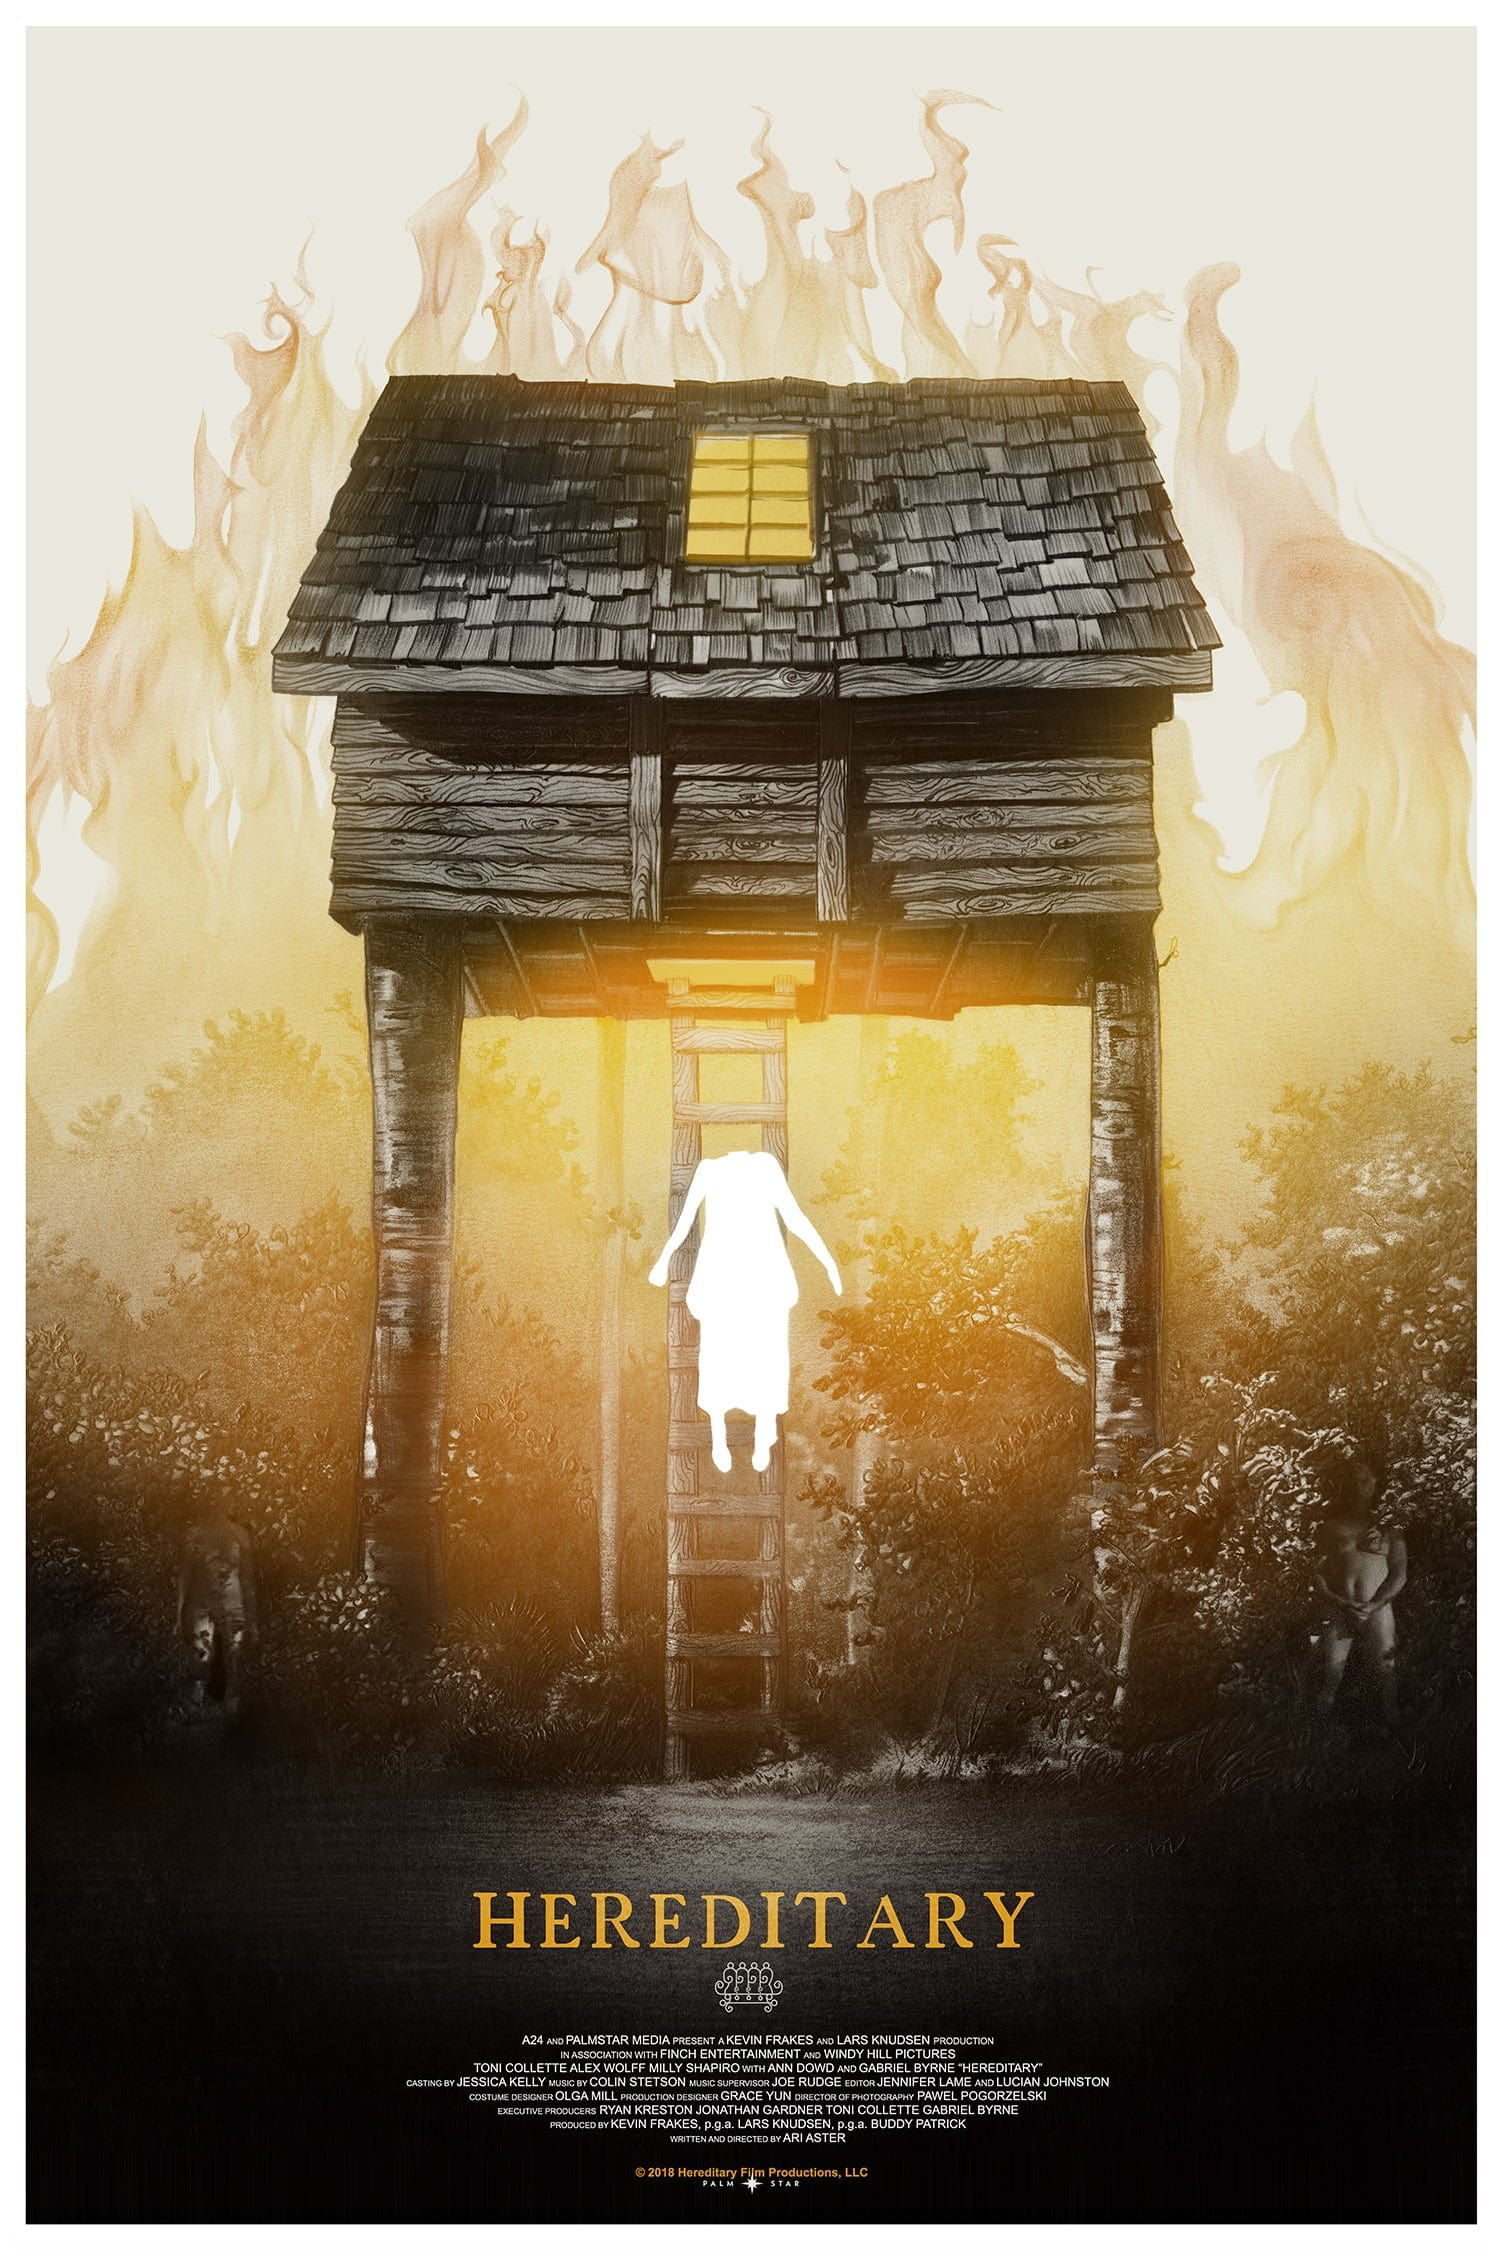 Greg Ruth HEREDITARY MONDO Poster Limited Edition of 300